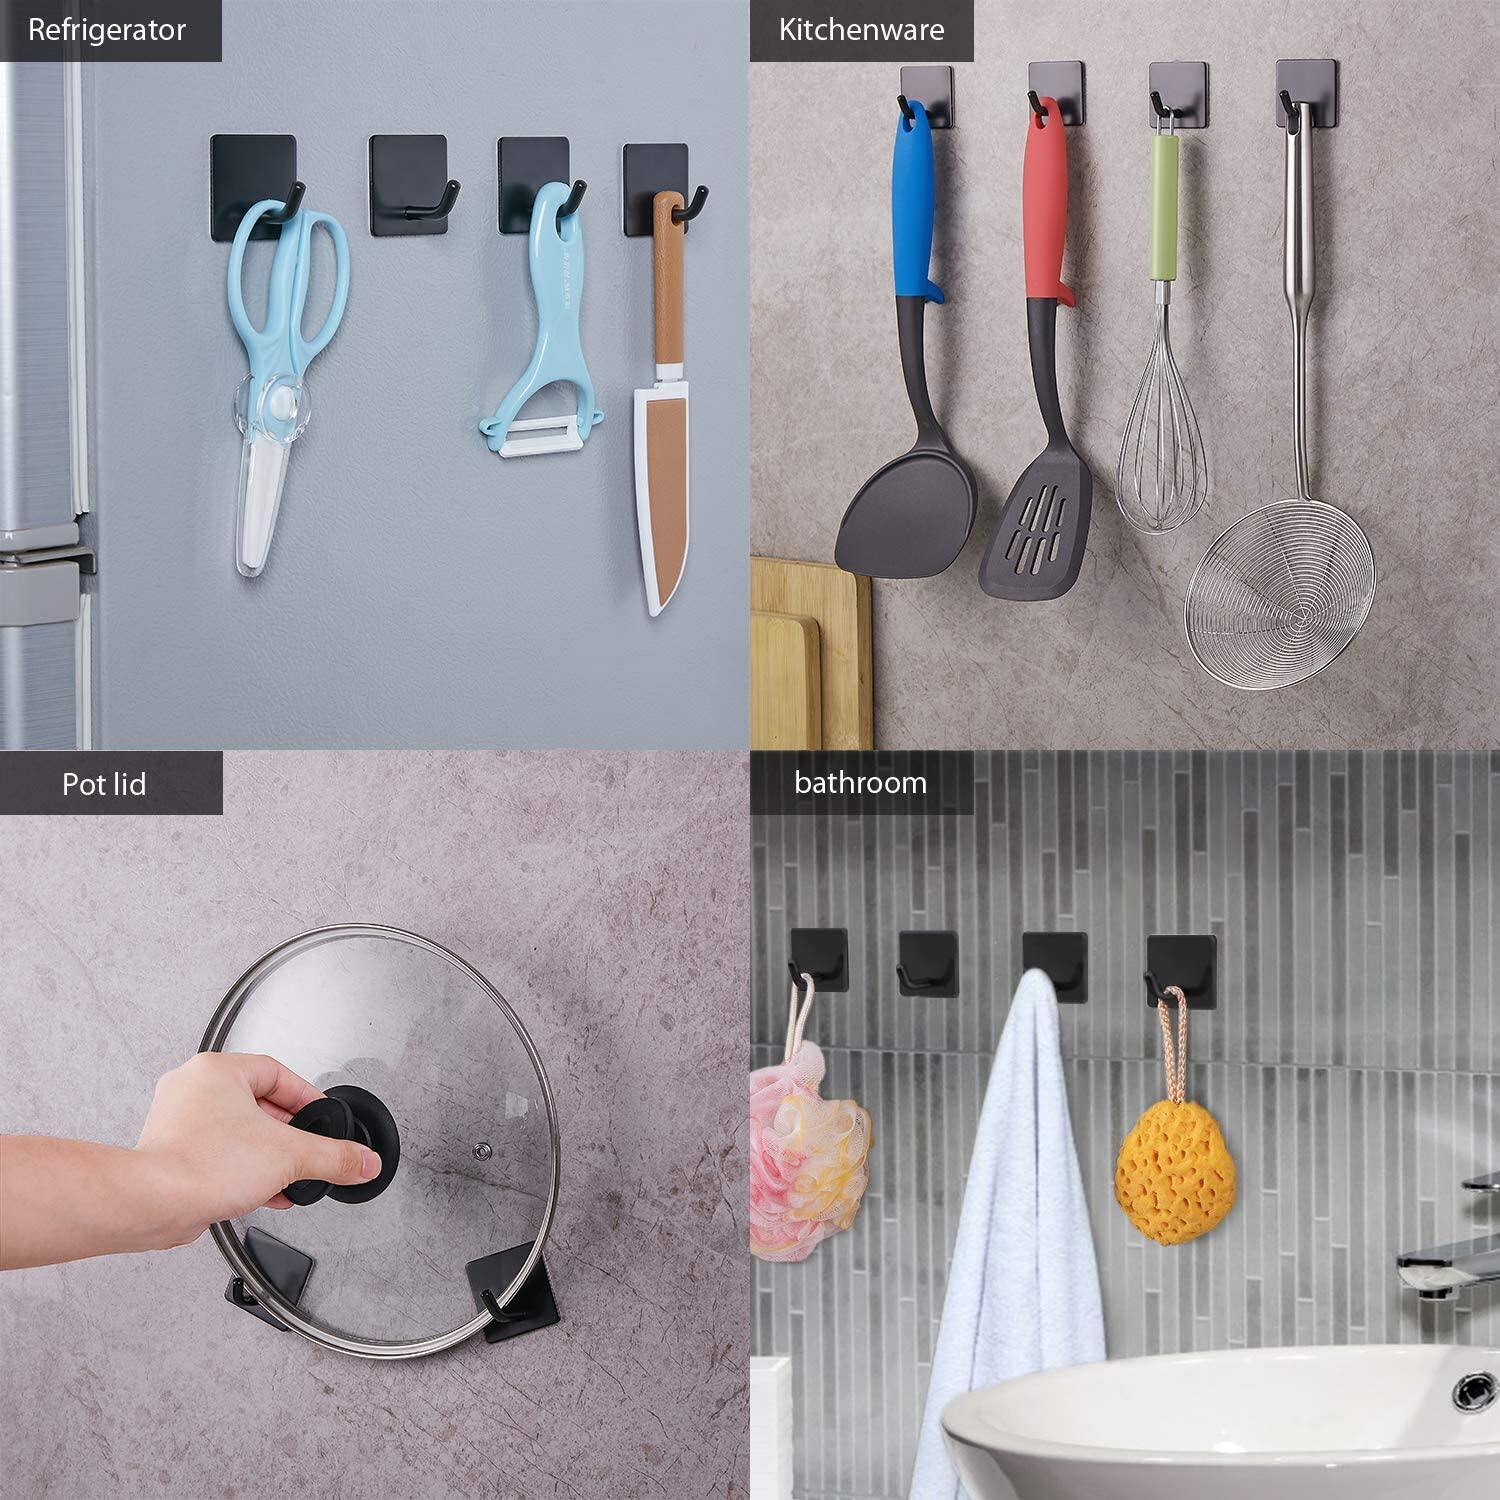 JS Self Adhesive Hooks, 4 Pack, Stick on Wall Hooks Heavy Duty Waterproof Coat Key Towel Hooks Holder for Bathrooms,Kitchen,Lavatory Closet,Door,Stainless Steel Hooks, Black JS Self Adhesive Towel Hooks, Bathroom Stainless Steel Towel Hooks at smart-join.com Towel Hooks